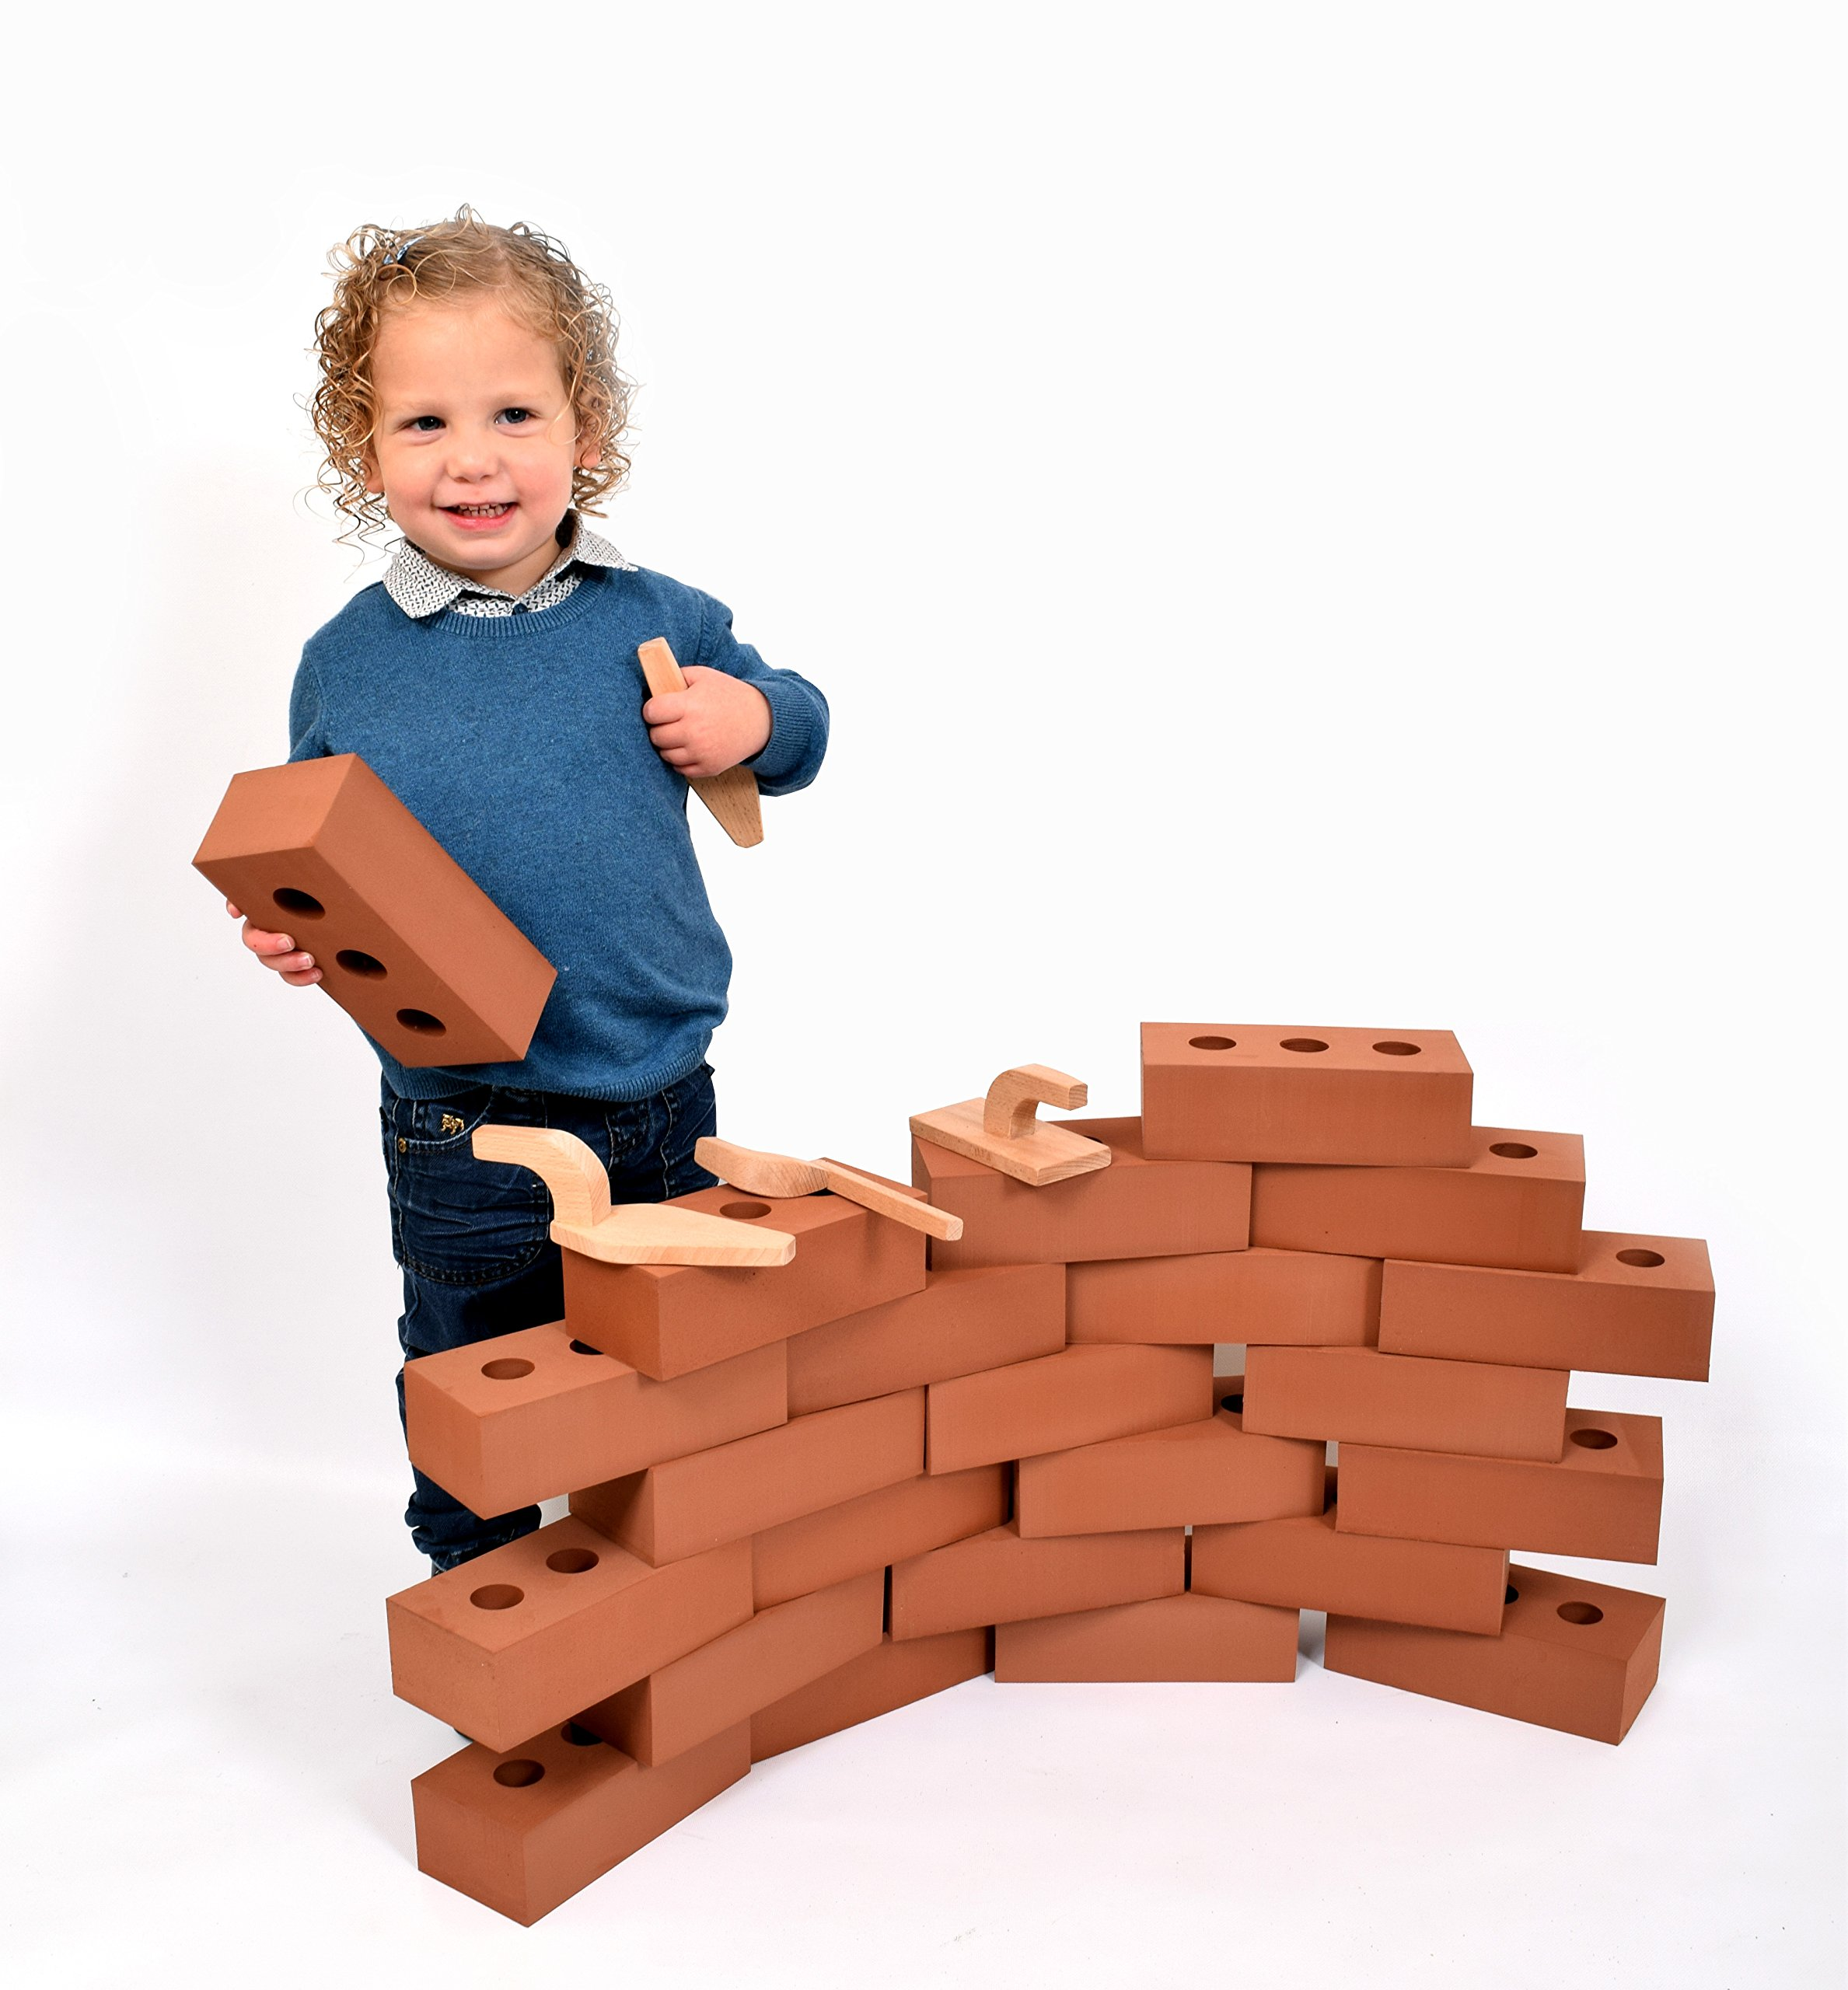 Life Size Foam Construction Building Blocks Bricks Toy Role Play Realistic by Playlearn (Pack of 25)